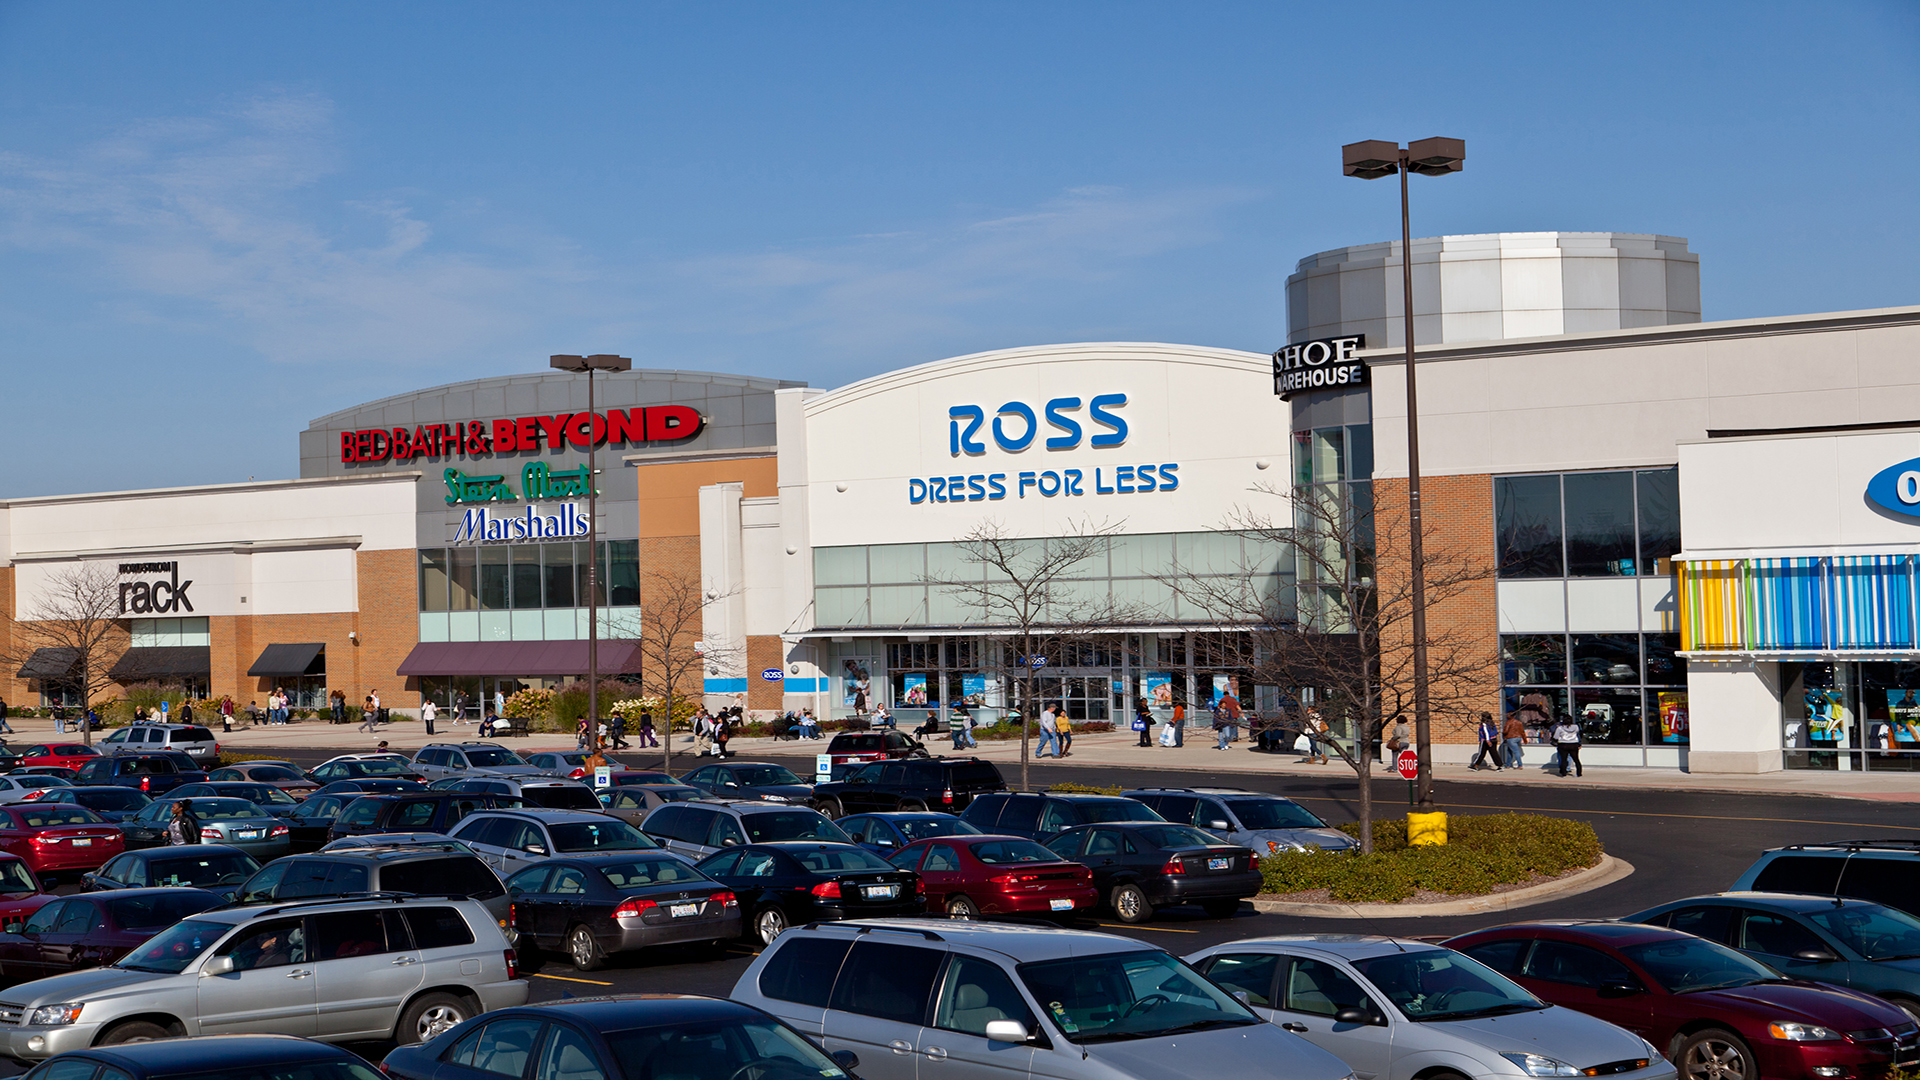 place mall shopping center orland park • place mall shopping center orland park photos • Orland Park Place (Place Mall Shopping Center)